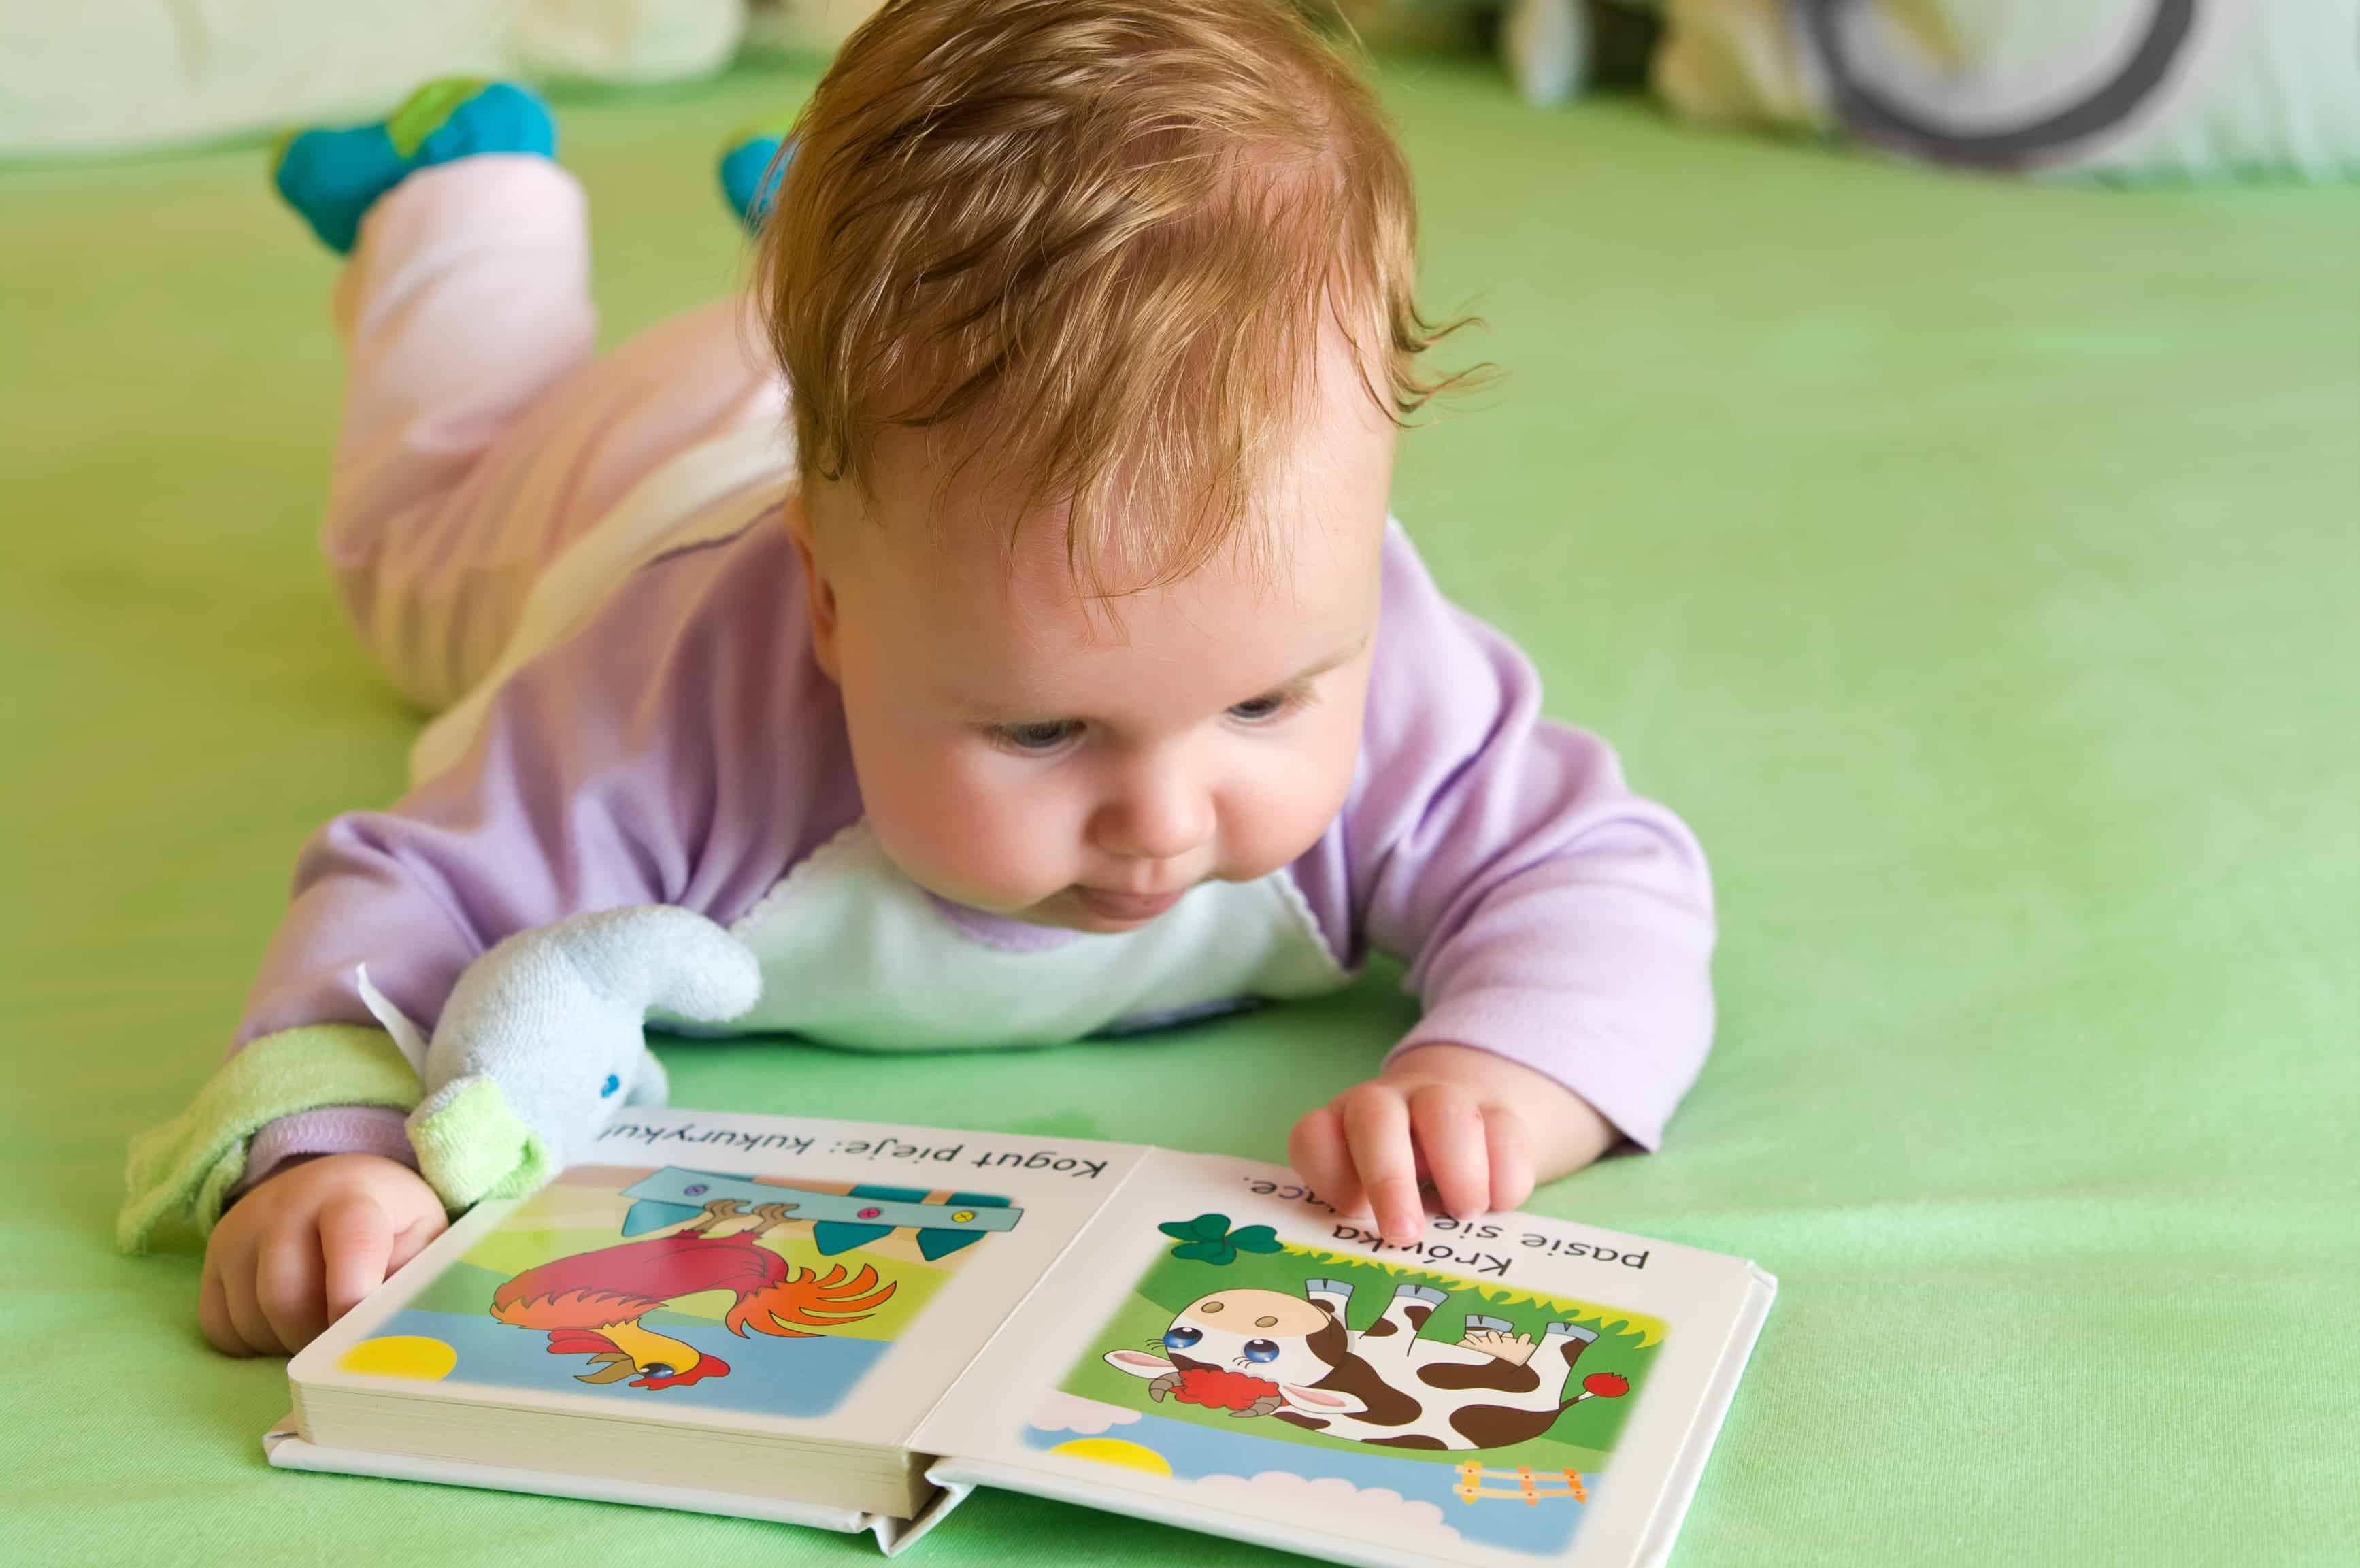 How to choose books for babies and toddlers